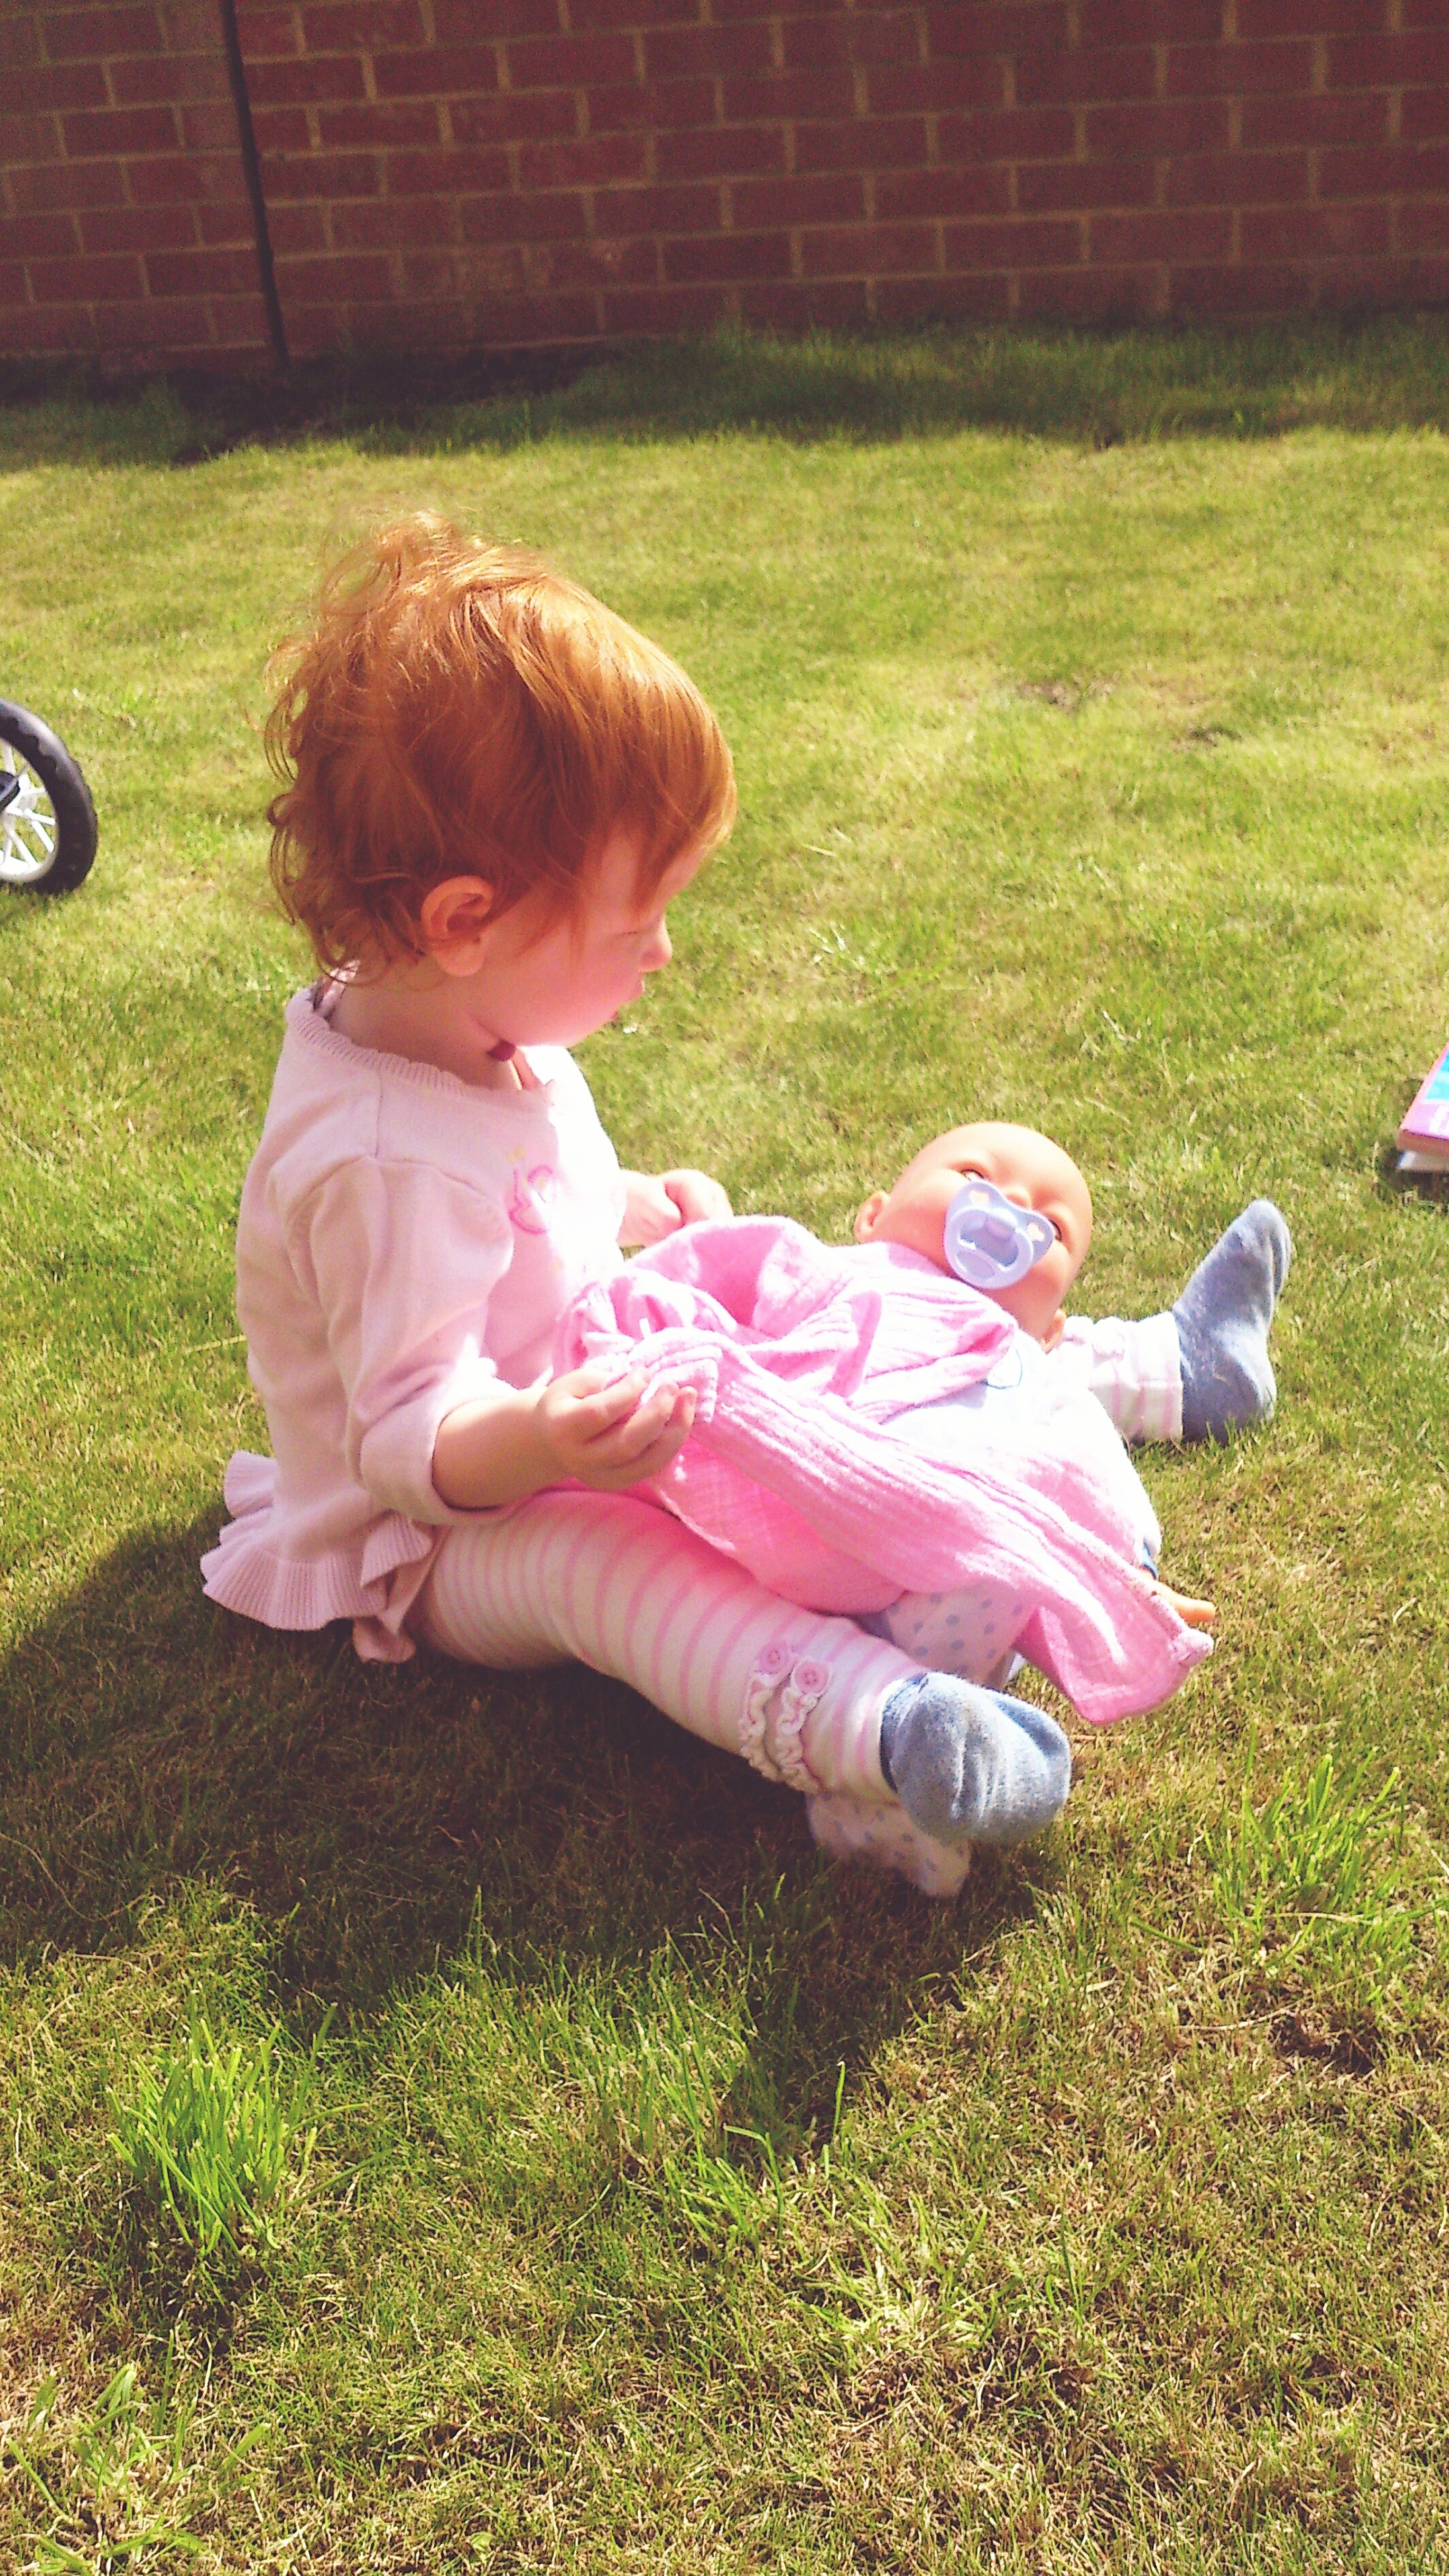 grass, childhood, elementary age, person, lifestyles, girls, casual clothing, full length, innocence, leisure activity, boys, sitting, grassy, cute, playful, field, lawn, playing